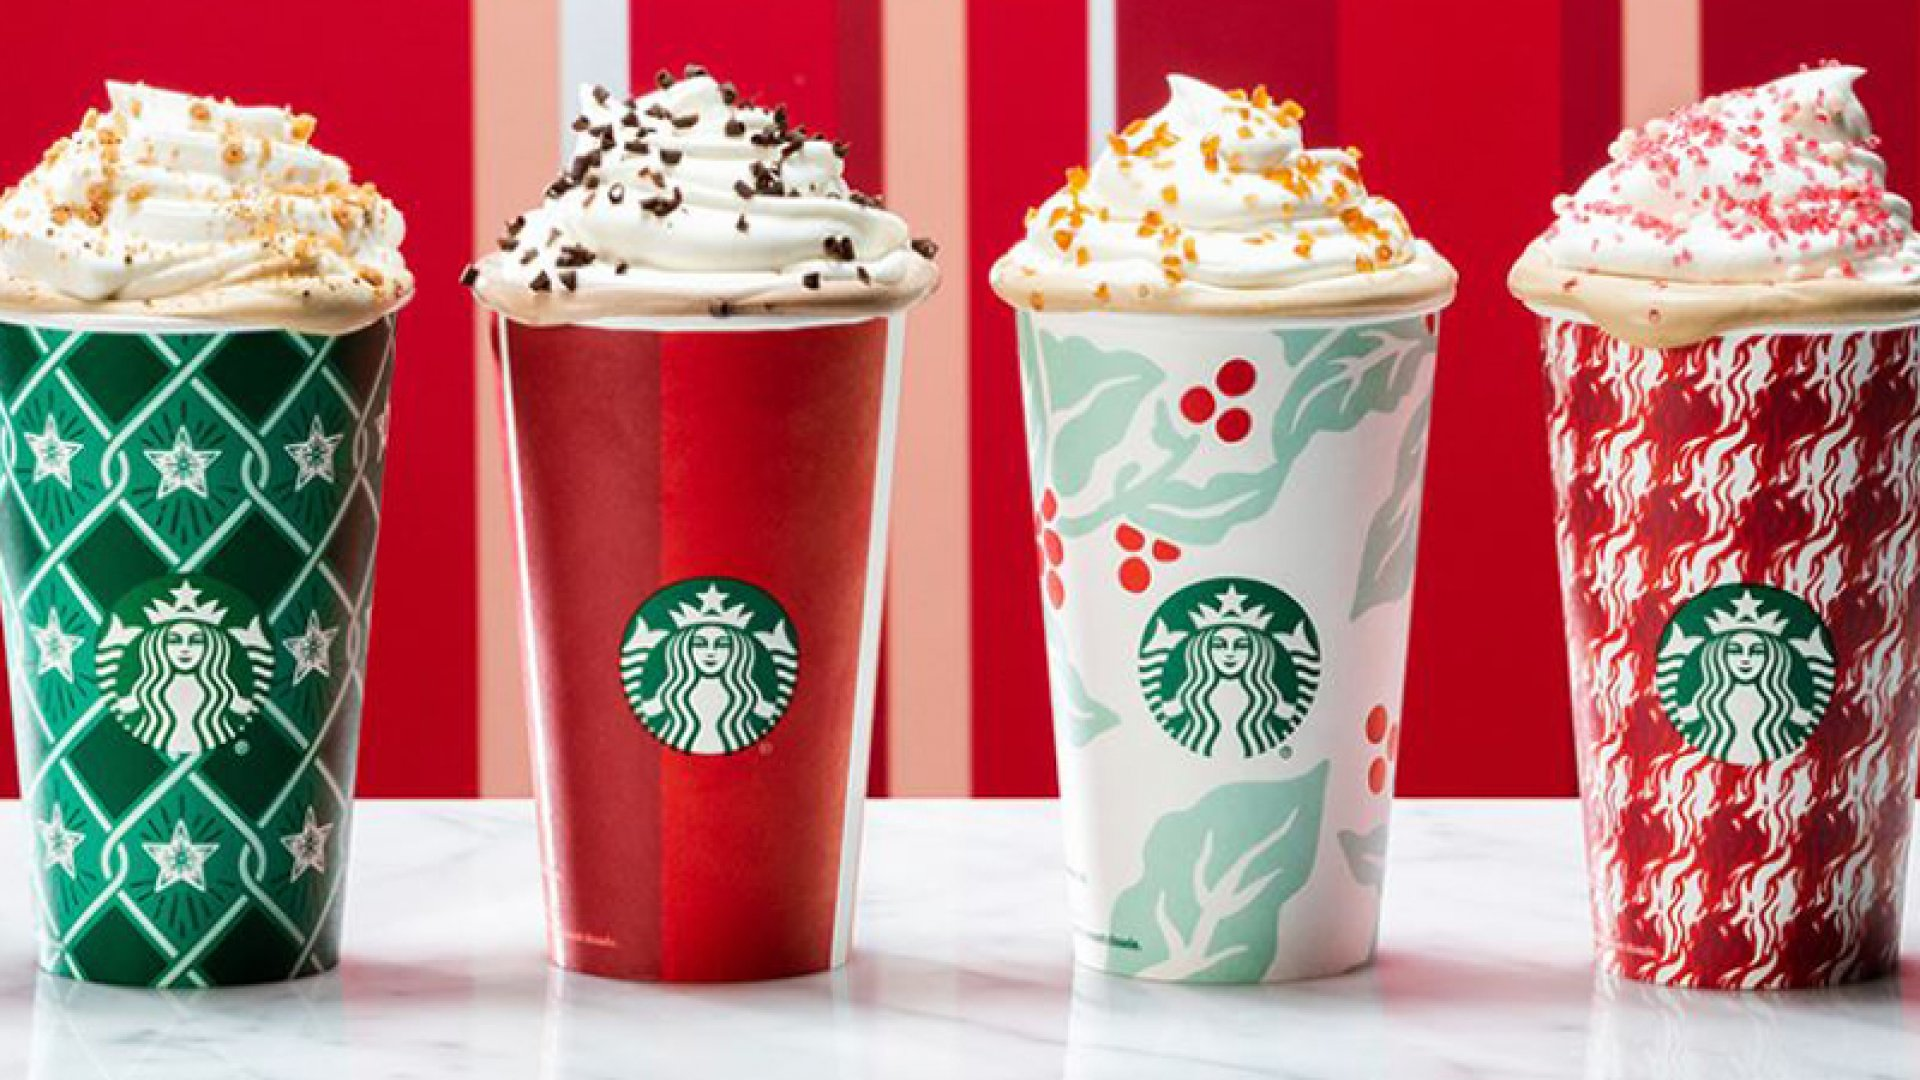 Starbucks Stirs up Anti-Christmas Subversion Again With Its New Holiday Cups (Well, One of Them)